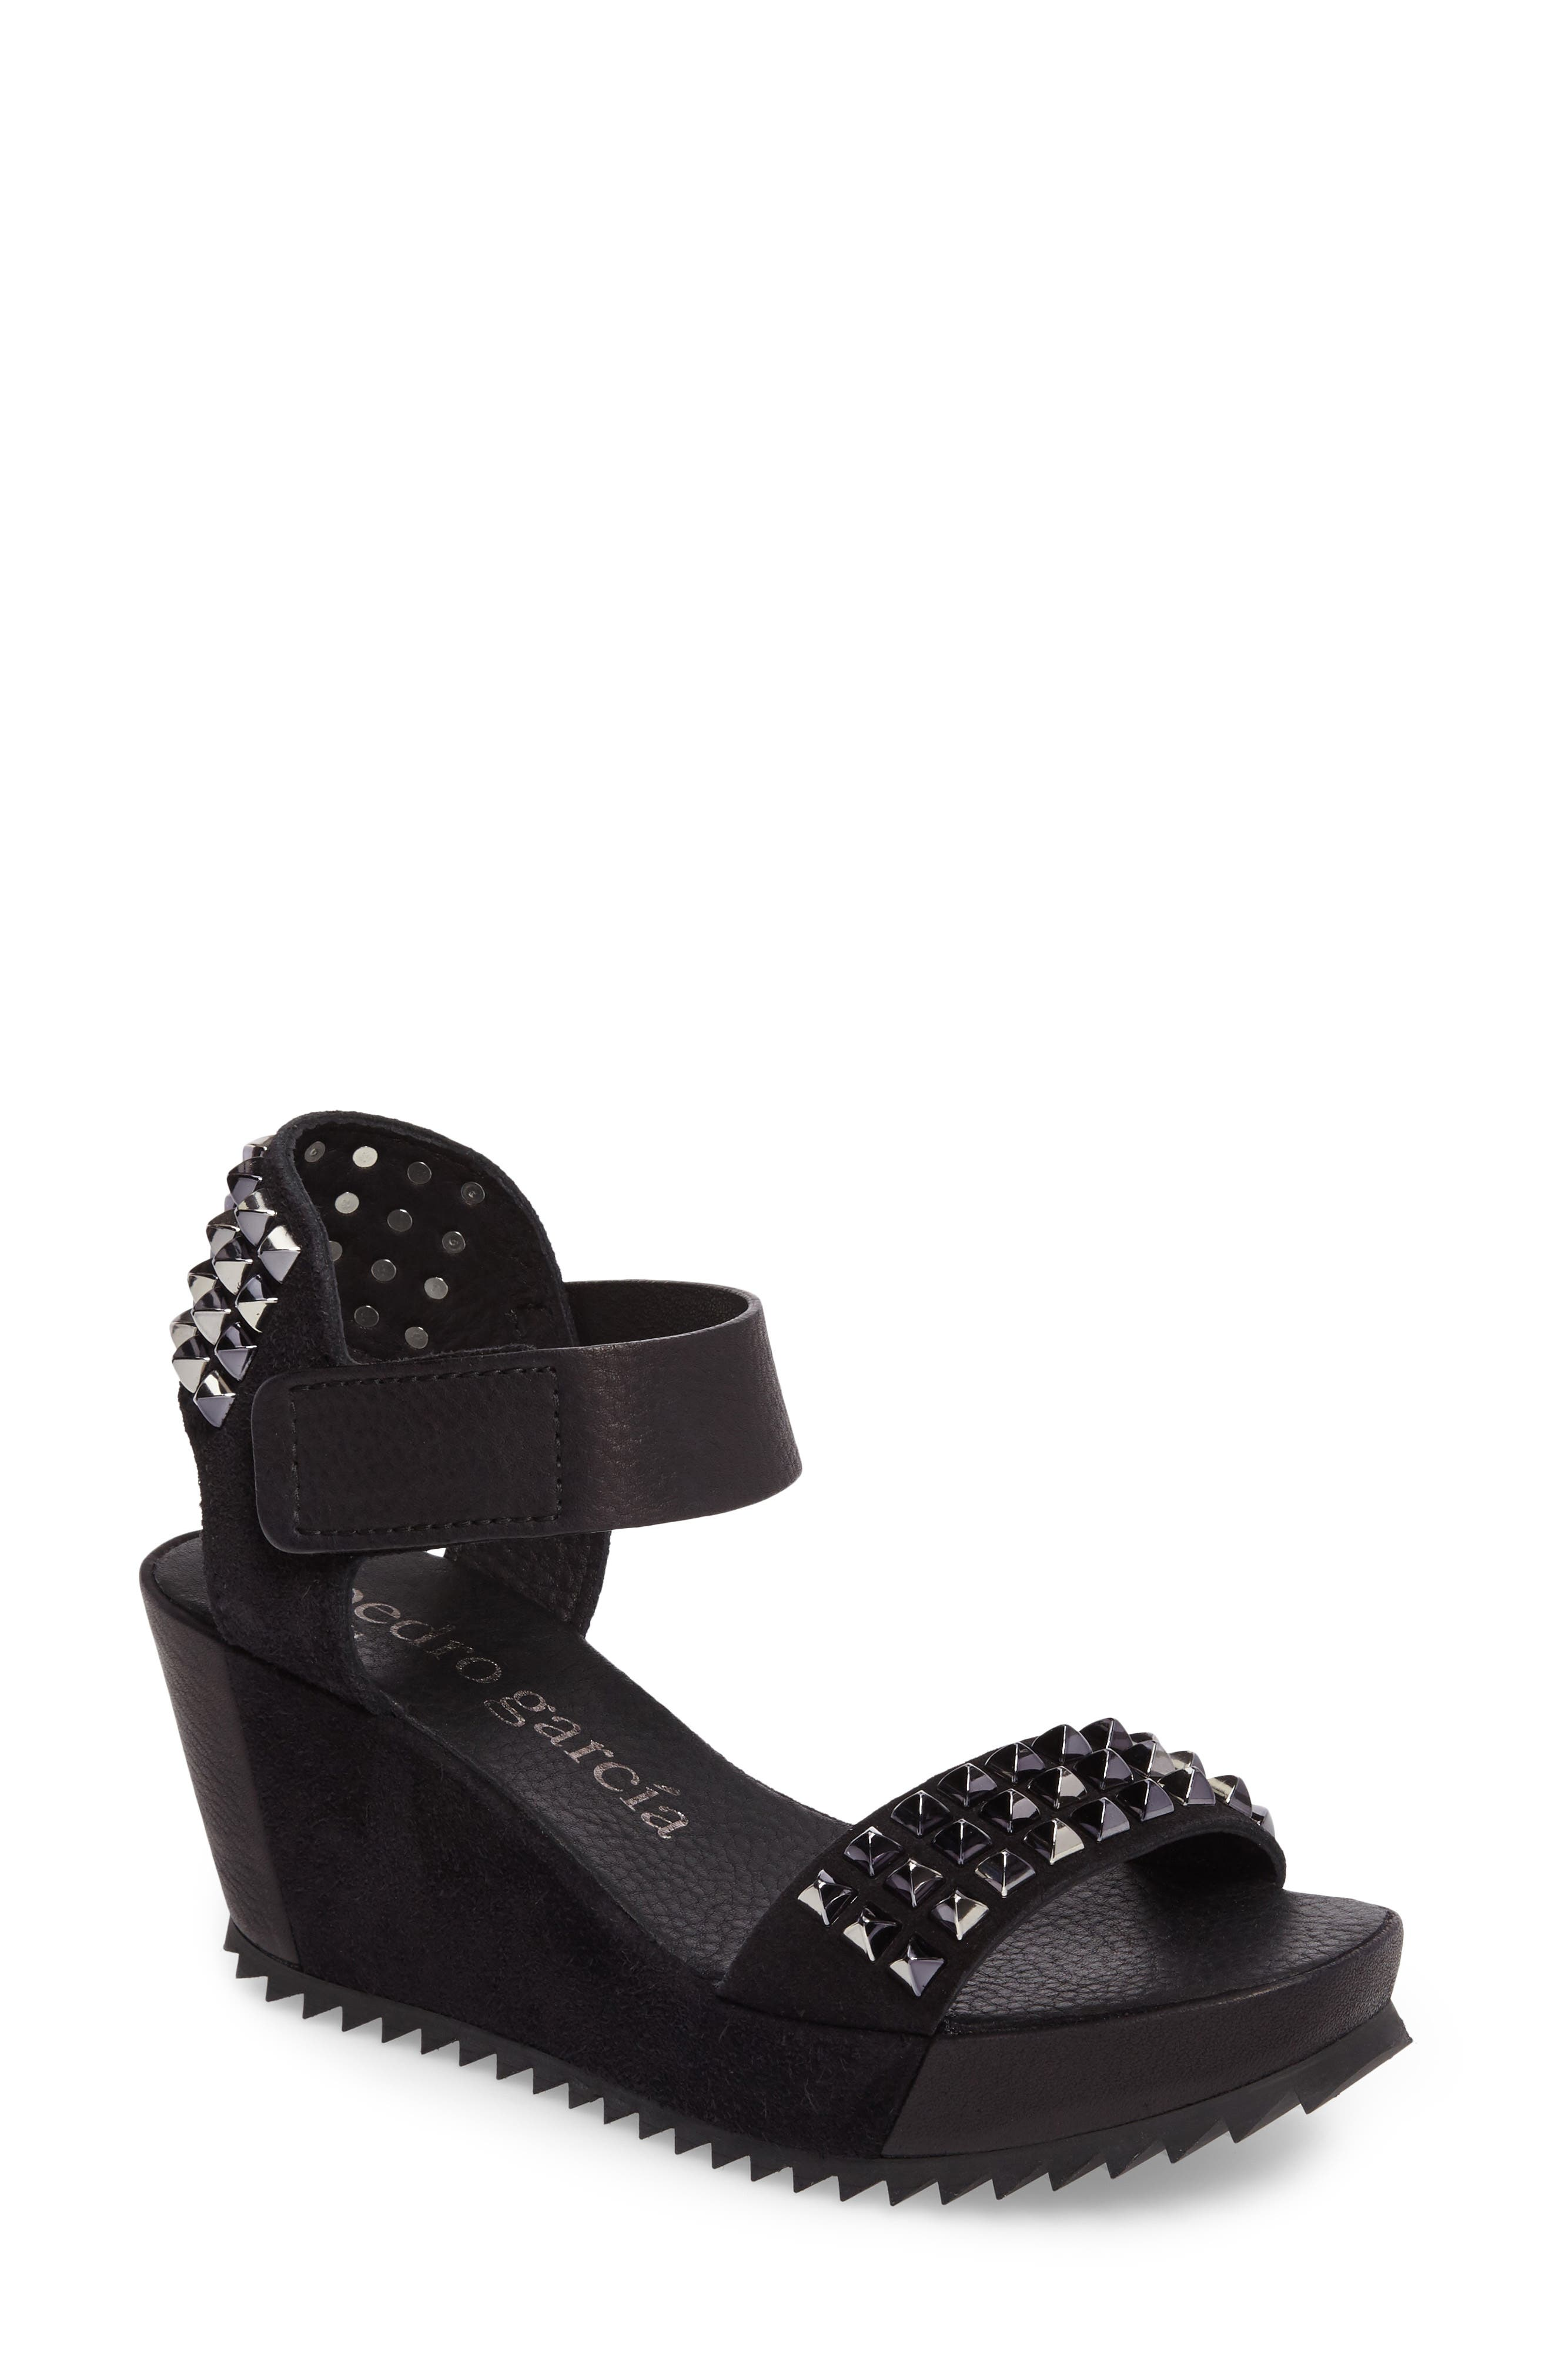 Fortuna Studded Wedge Sandal,                             Main thumbnail 1, color,